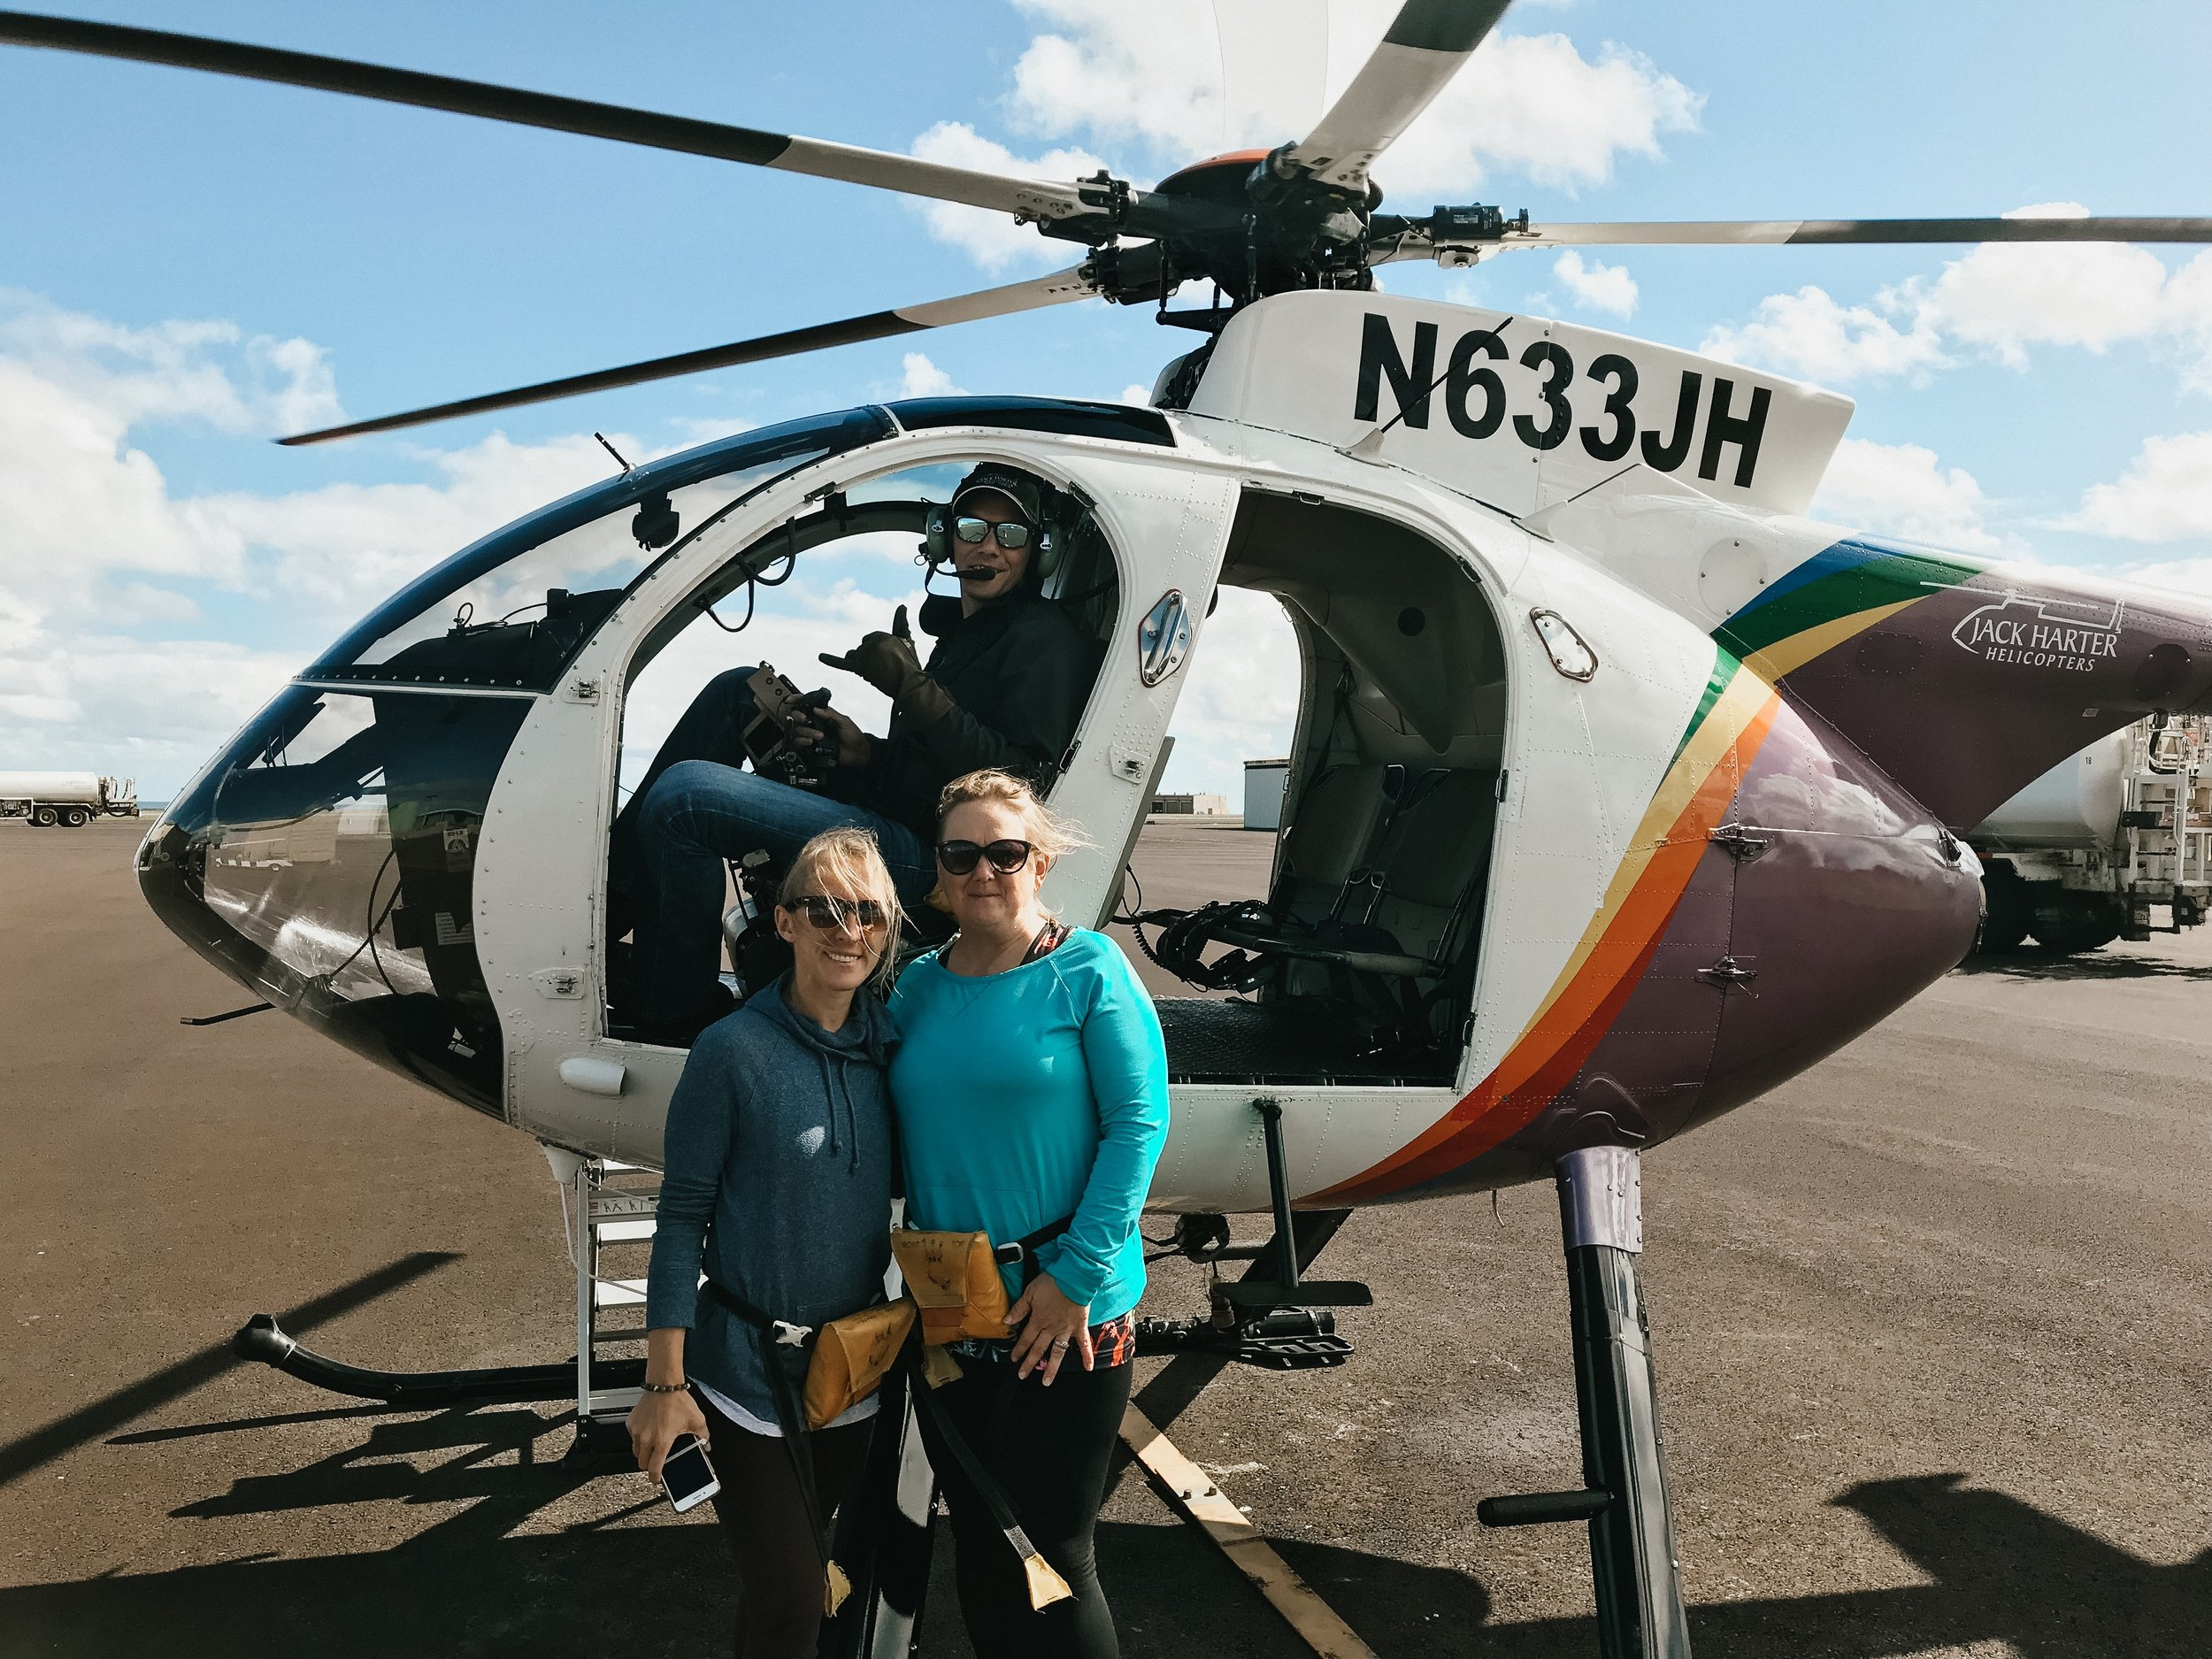 Ah, the crown jewel of the trip. After our morning at the market, we floated through the clouds with Jack Harter Helicopters. We even felt the breeze through our hair - since the helicopter had no doors!